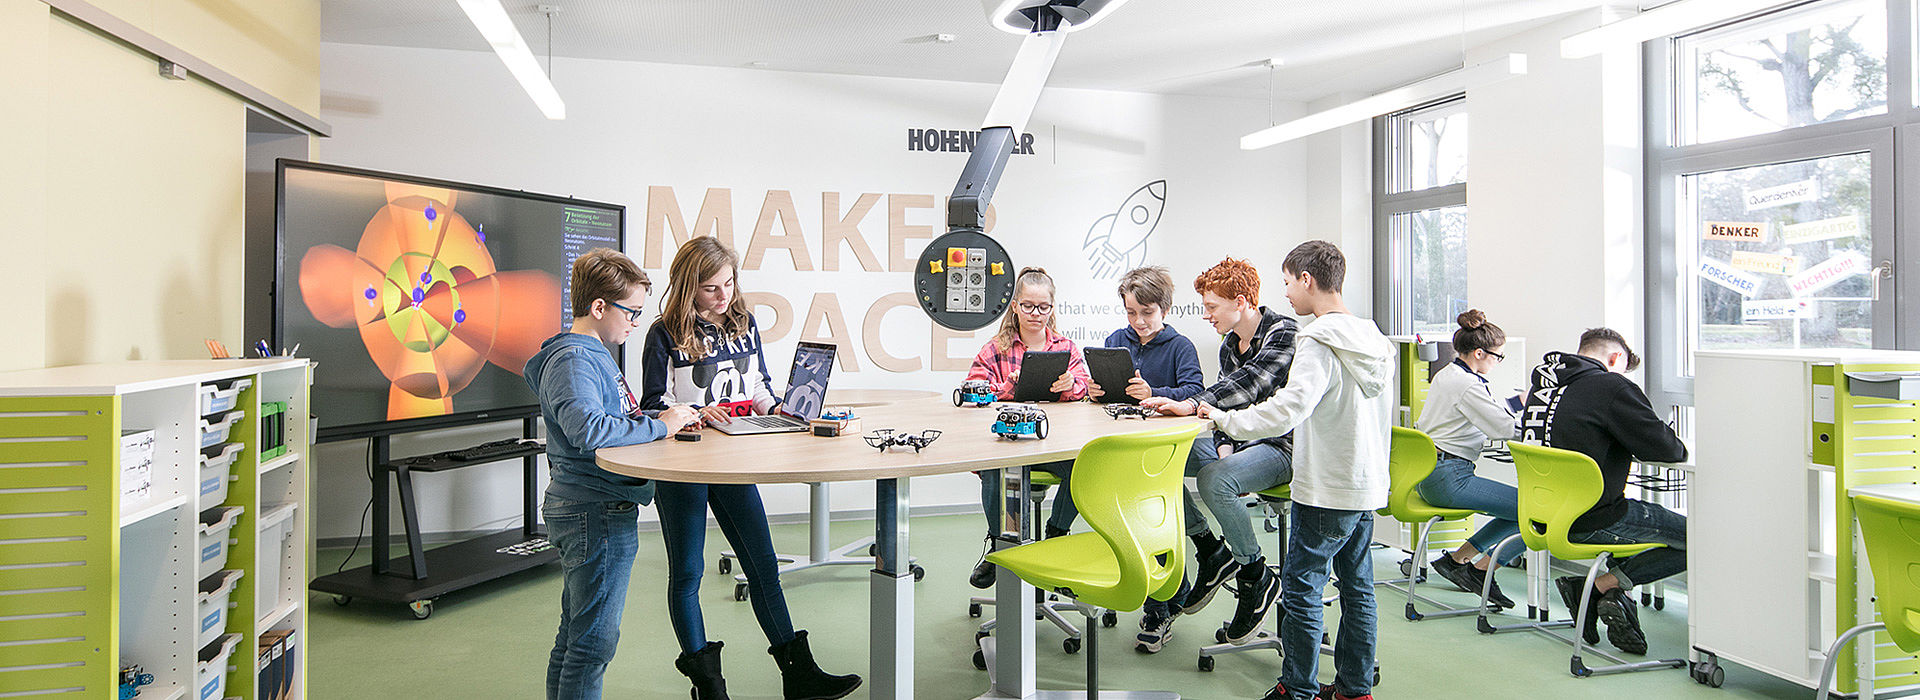 Image: Coding, Robotics & Bionics at Makerspace